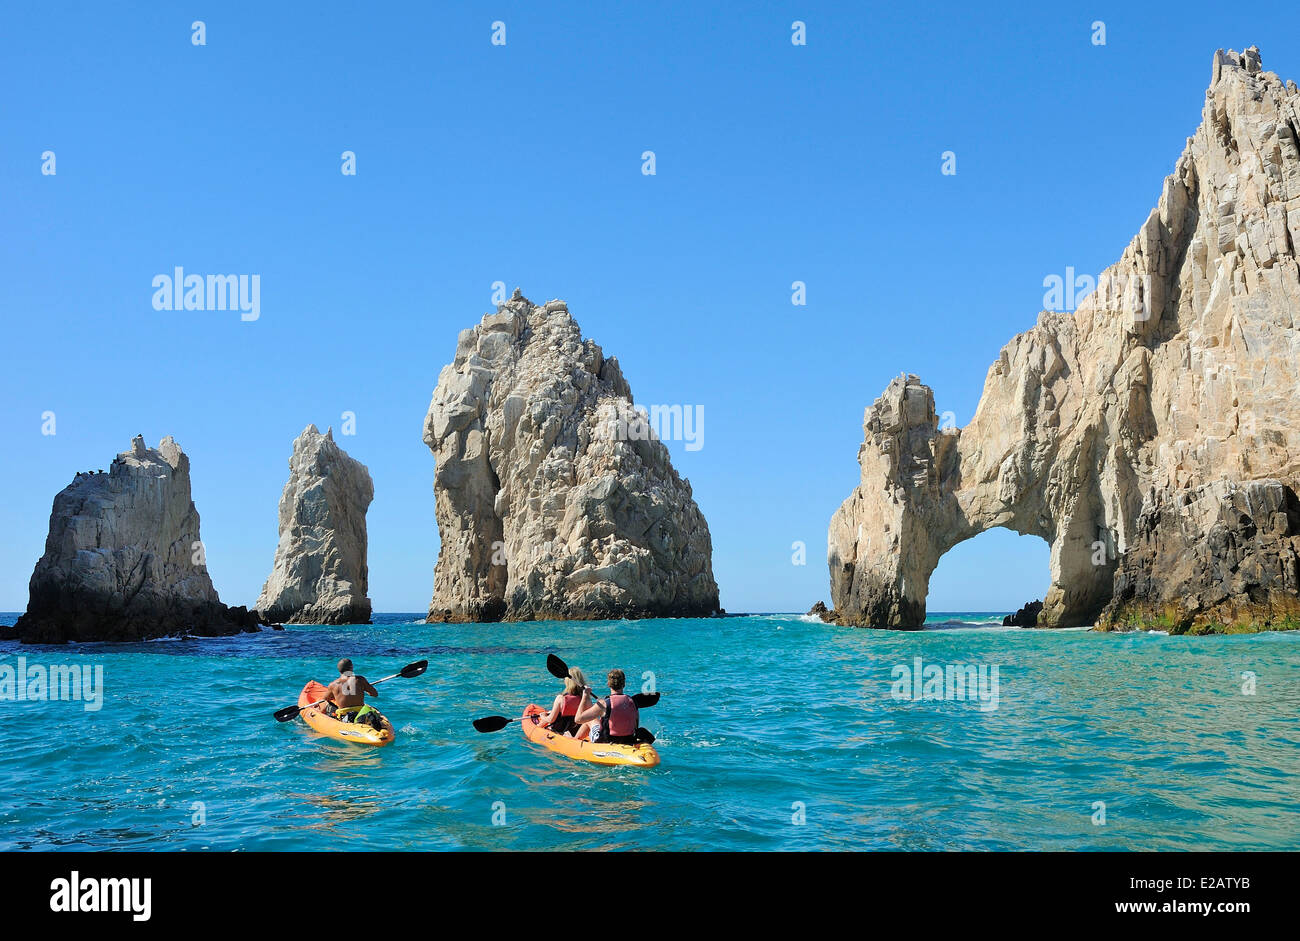 Mexico, Baja California Sur State, Sea of Cortez, listed as World Heritage by UNESCO, Cabo San Lucas, Sea Kayaking - Stock Image